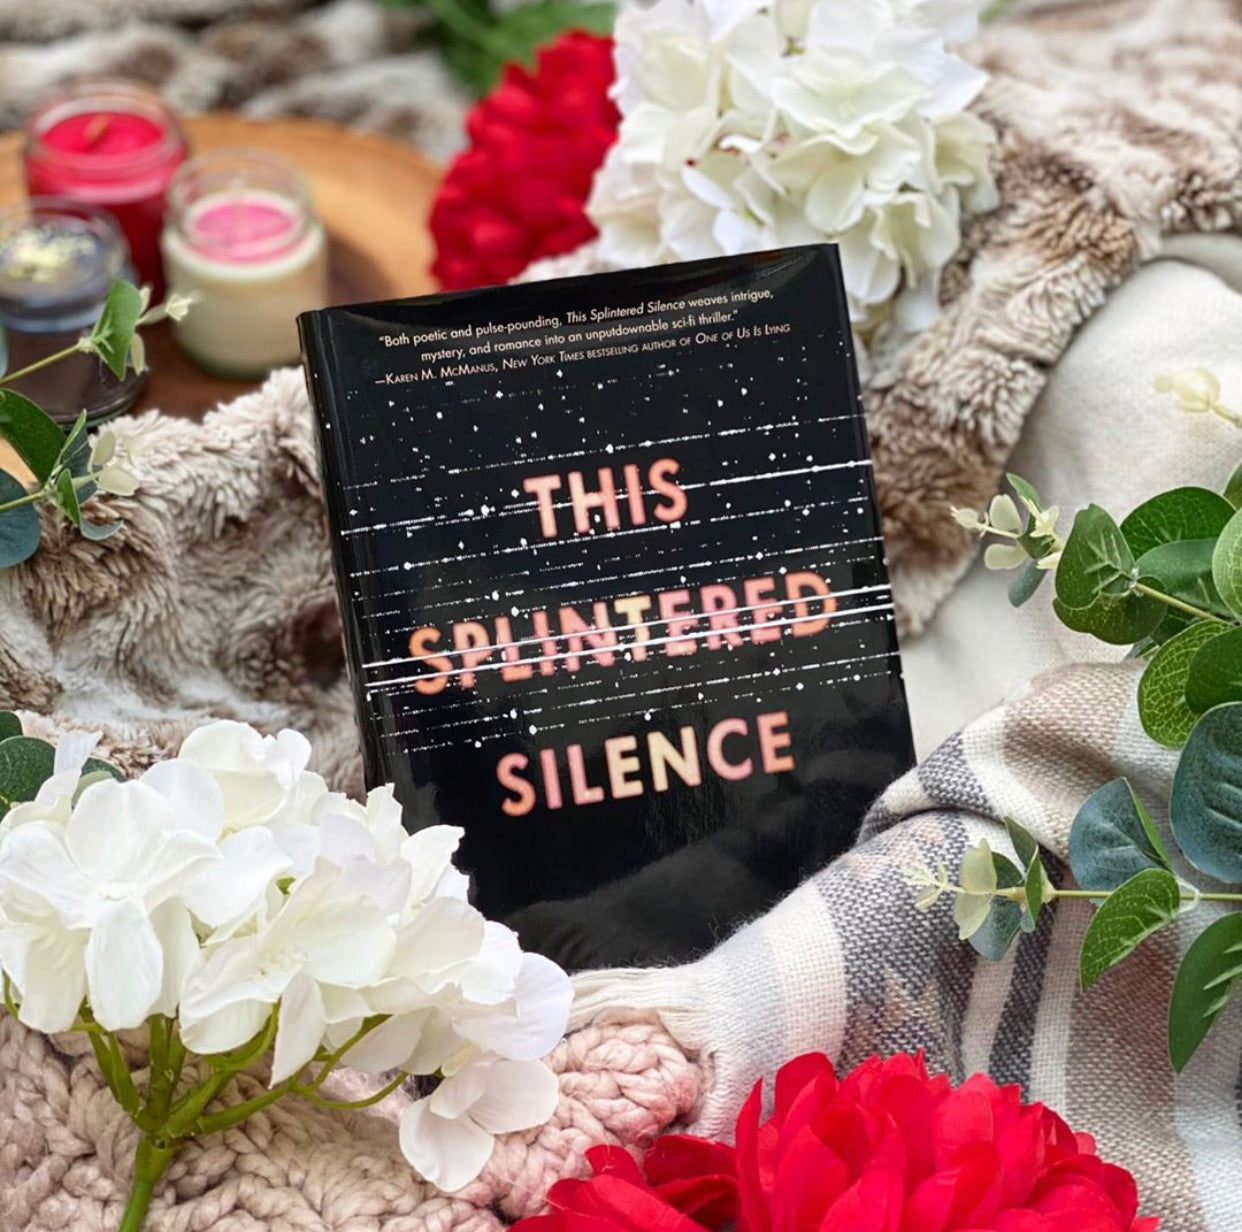 This Splintered Silence by Kayla Olson (Signed Hardcover)